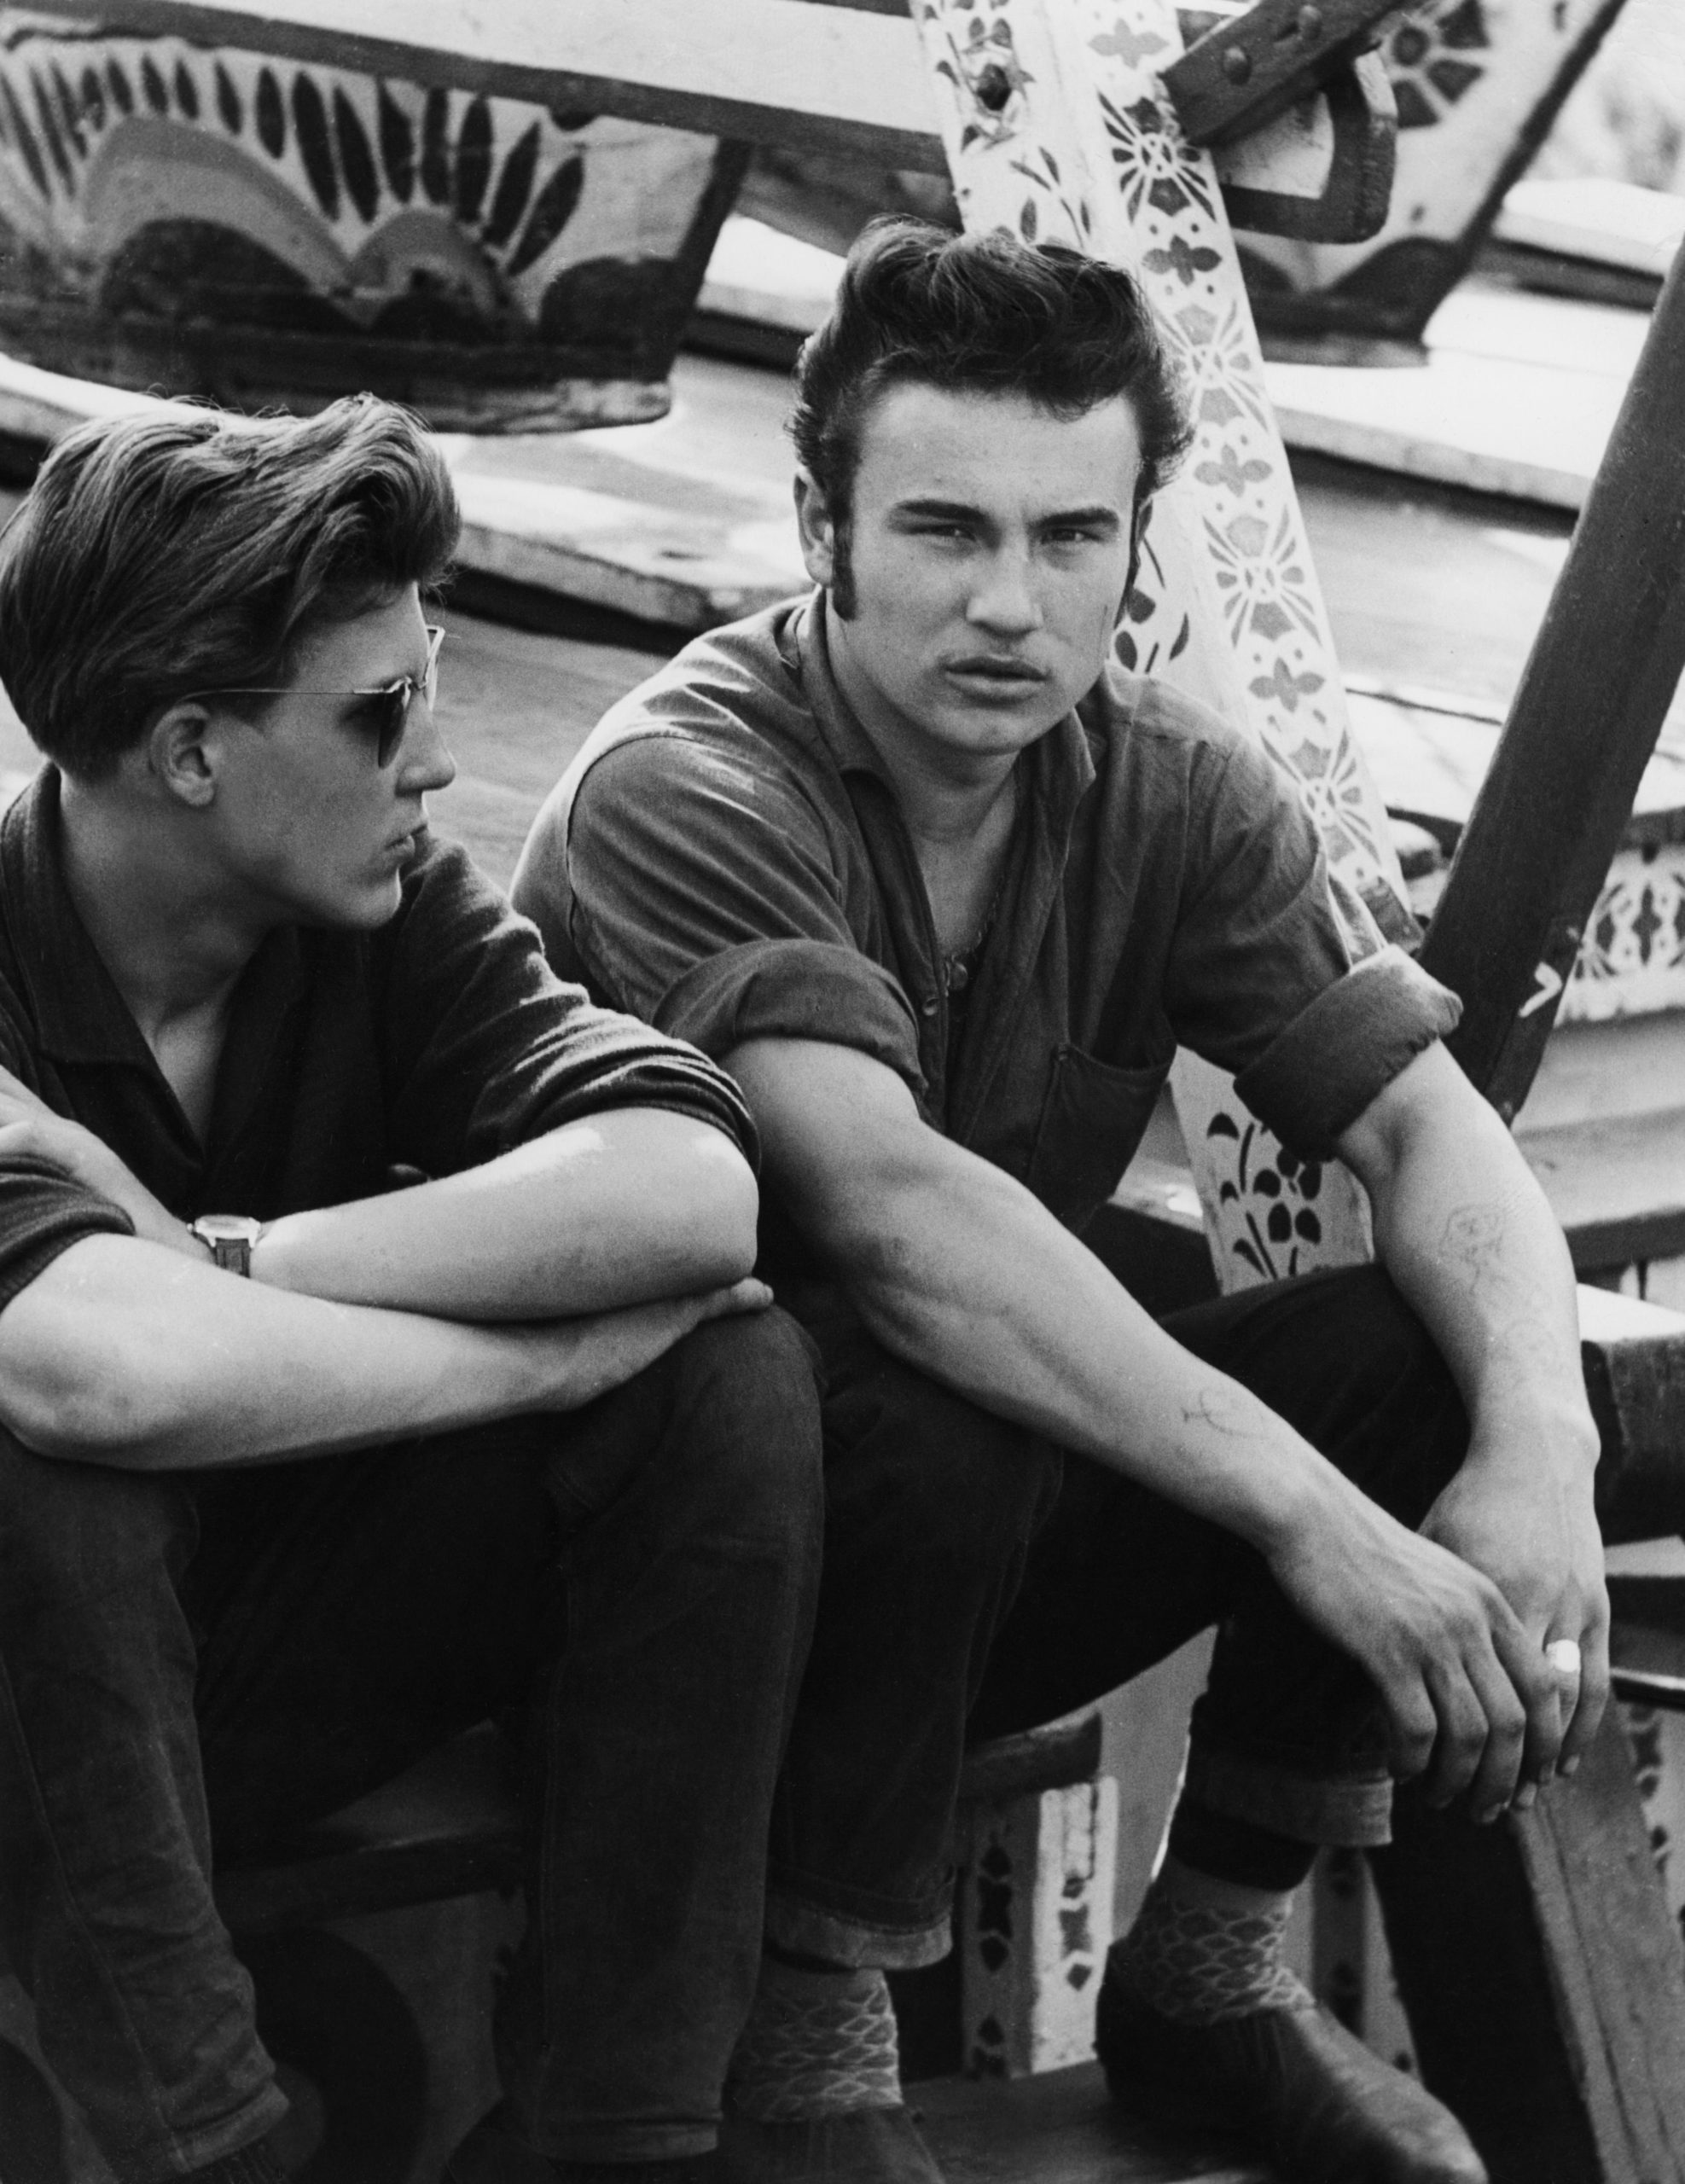 Two male teens at carnival in 1950s